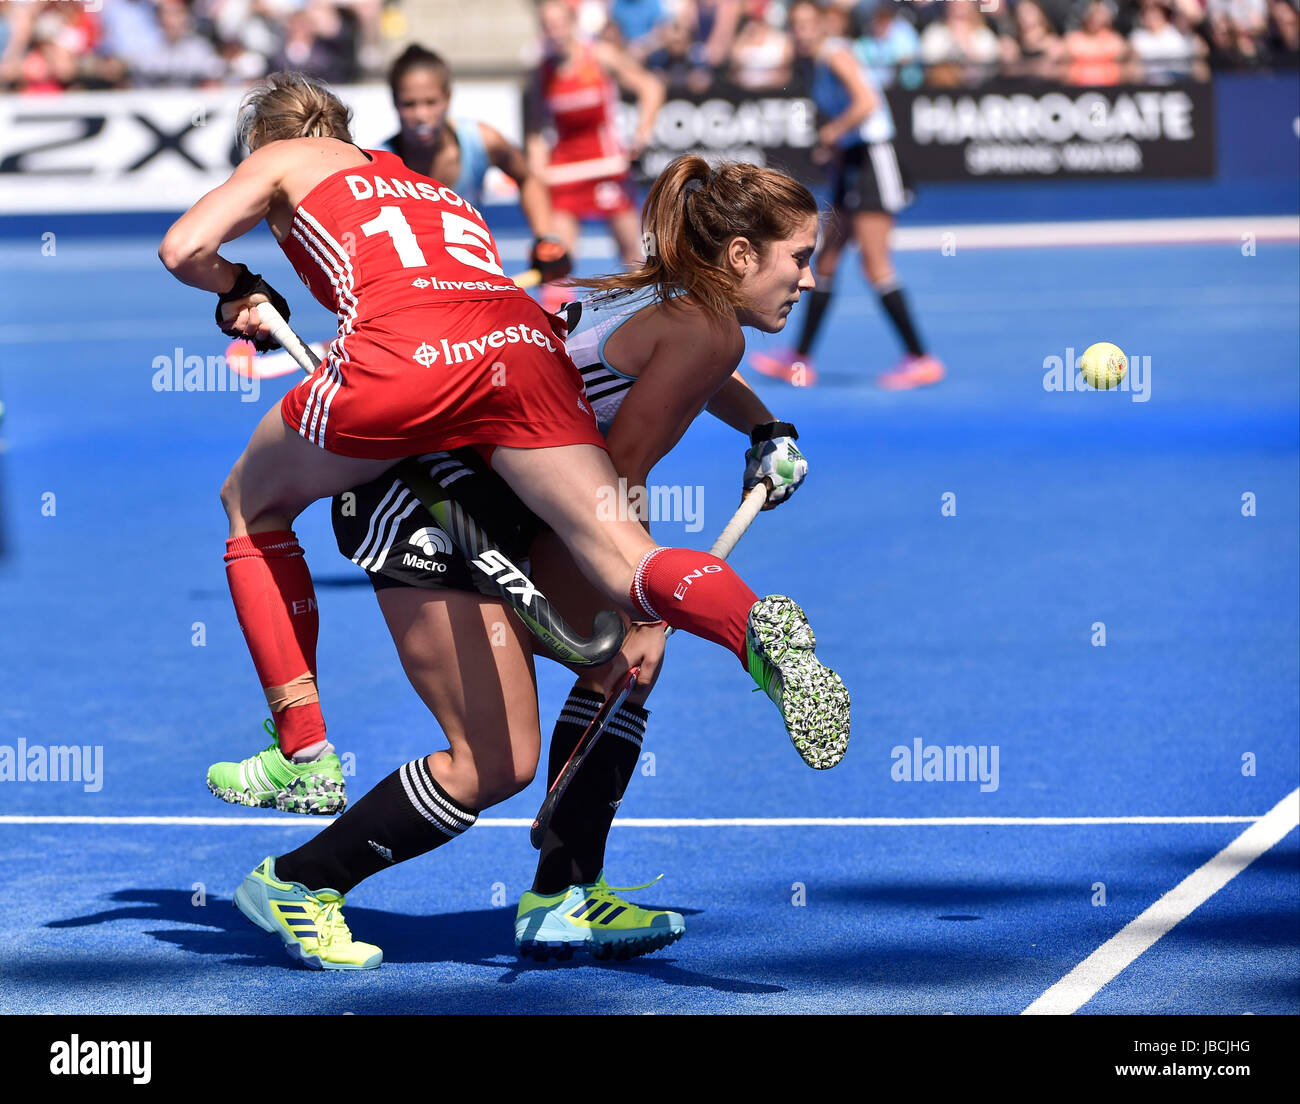 LONDON ENGLAND - June 10, 2017: Alex Danson (ENG) clashed with Julia Gomes (ARG) during 2017 Investec International - Stock Image